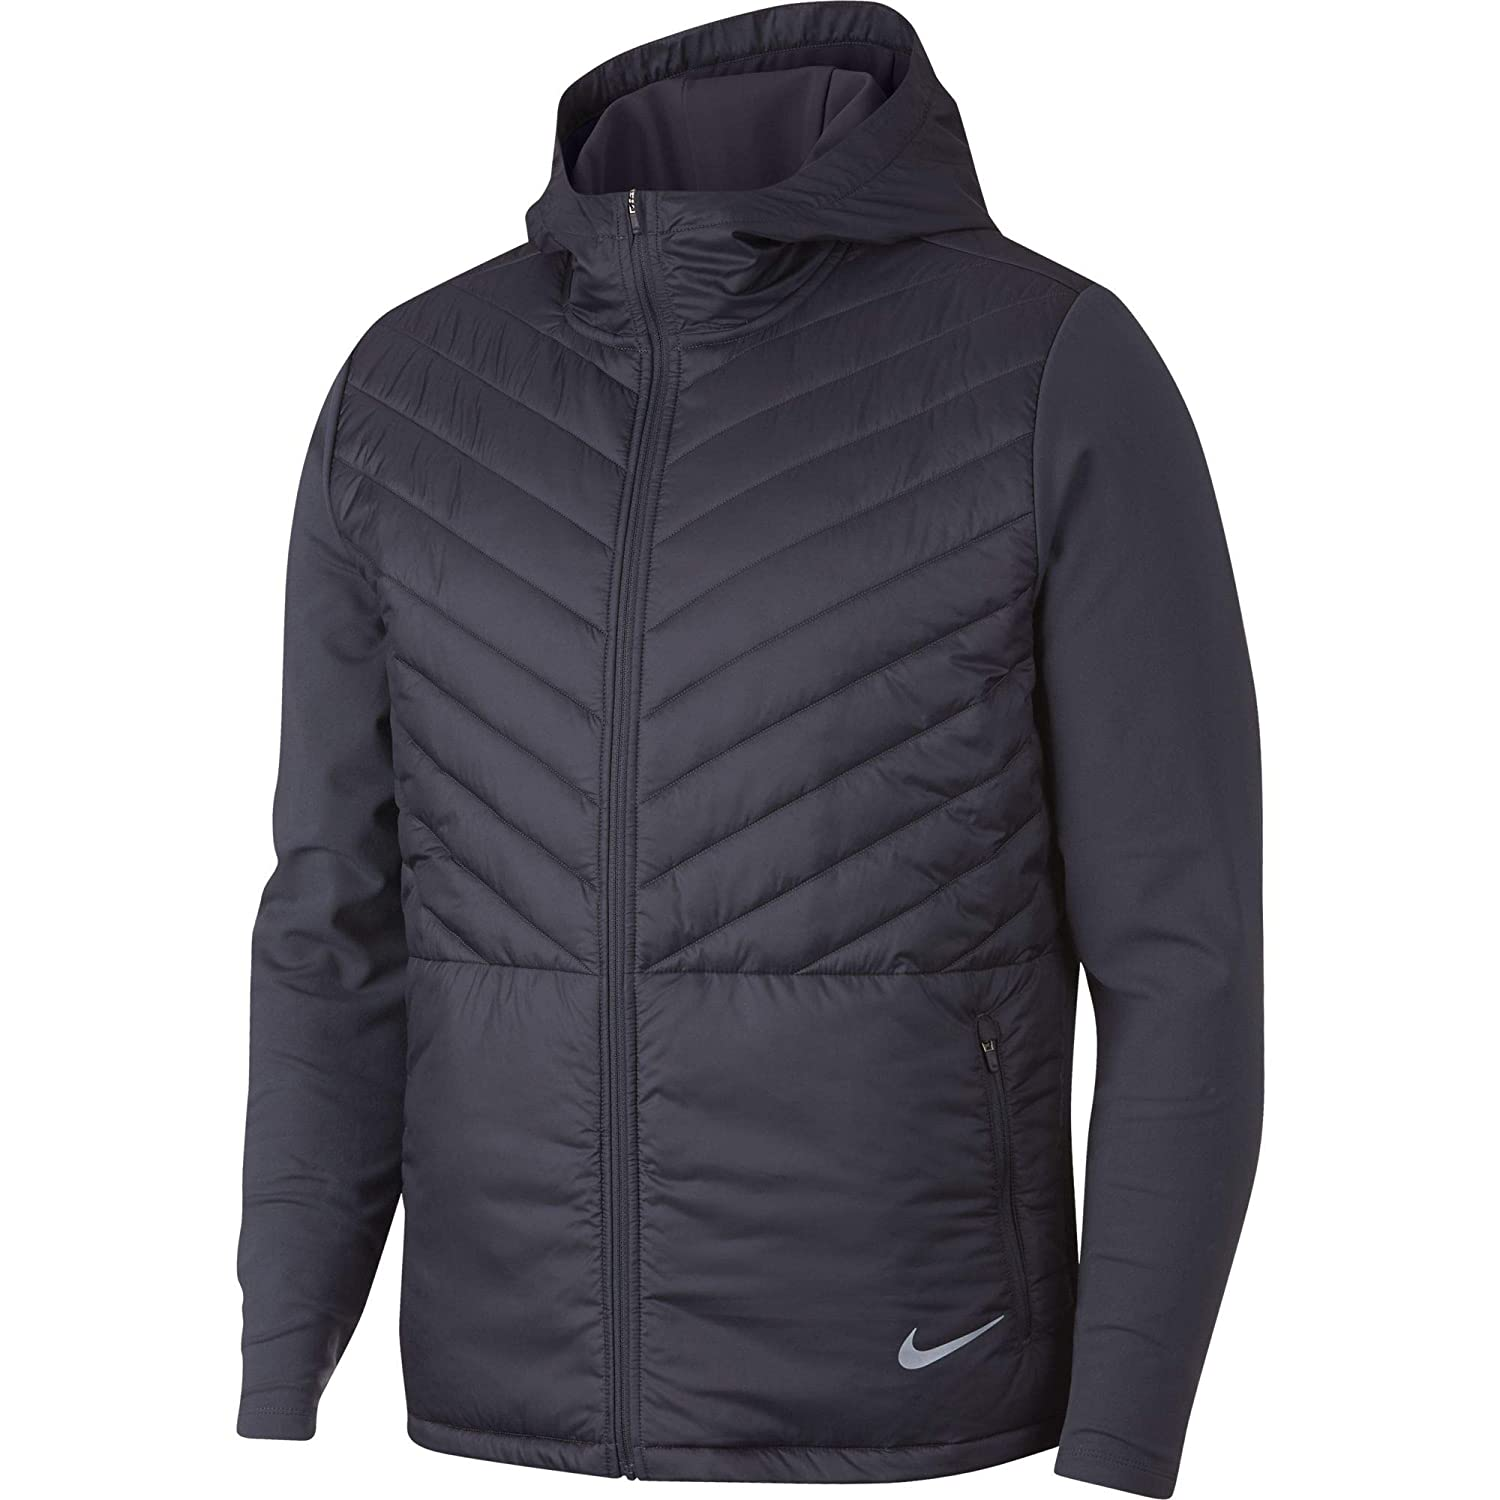 Fresco Ocultación Uva  NIKE M NK AROLYR Jacket Men's Running Jacket: Amazon.in: Sports, Fitness &  Outdoors